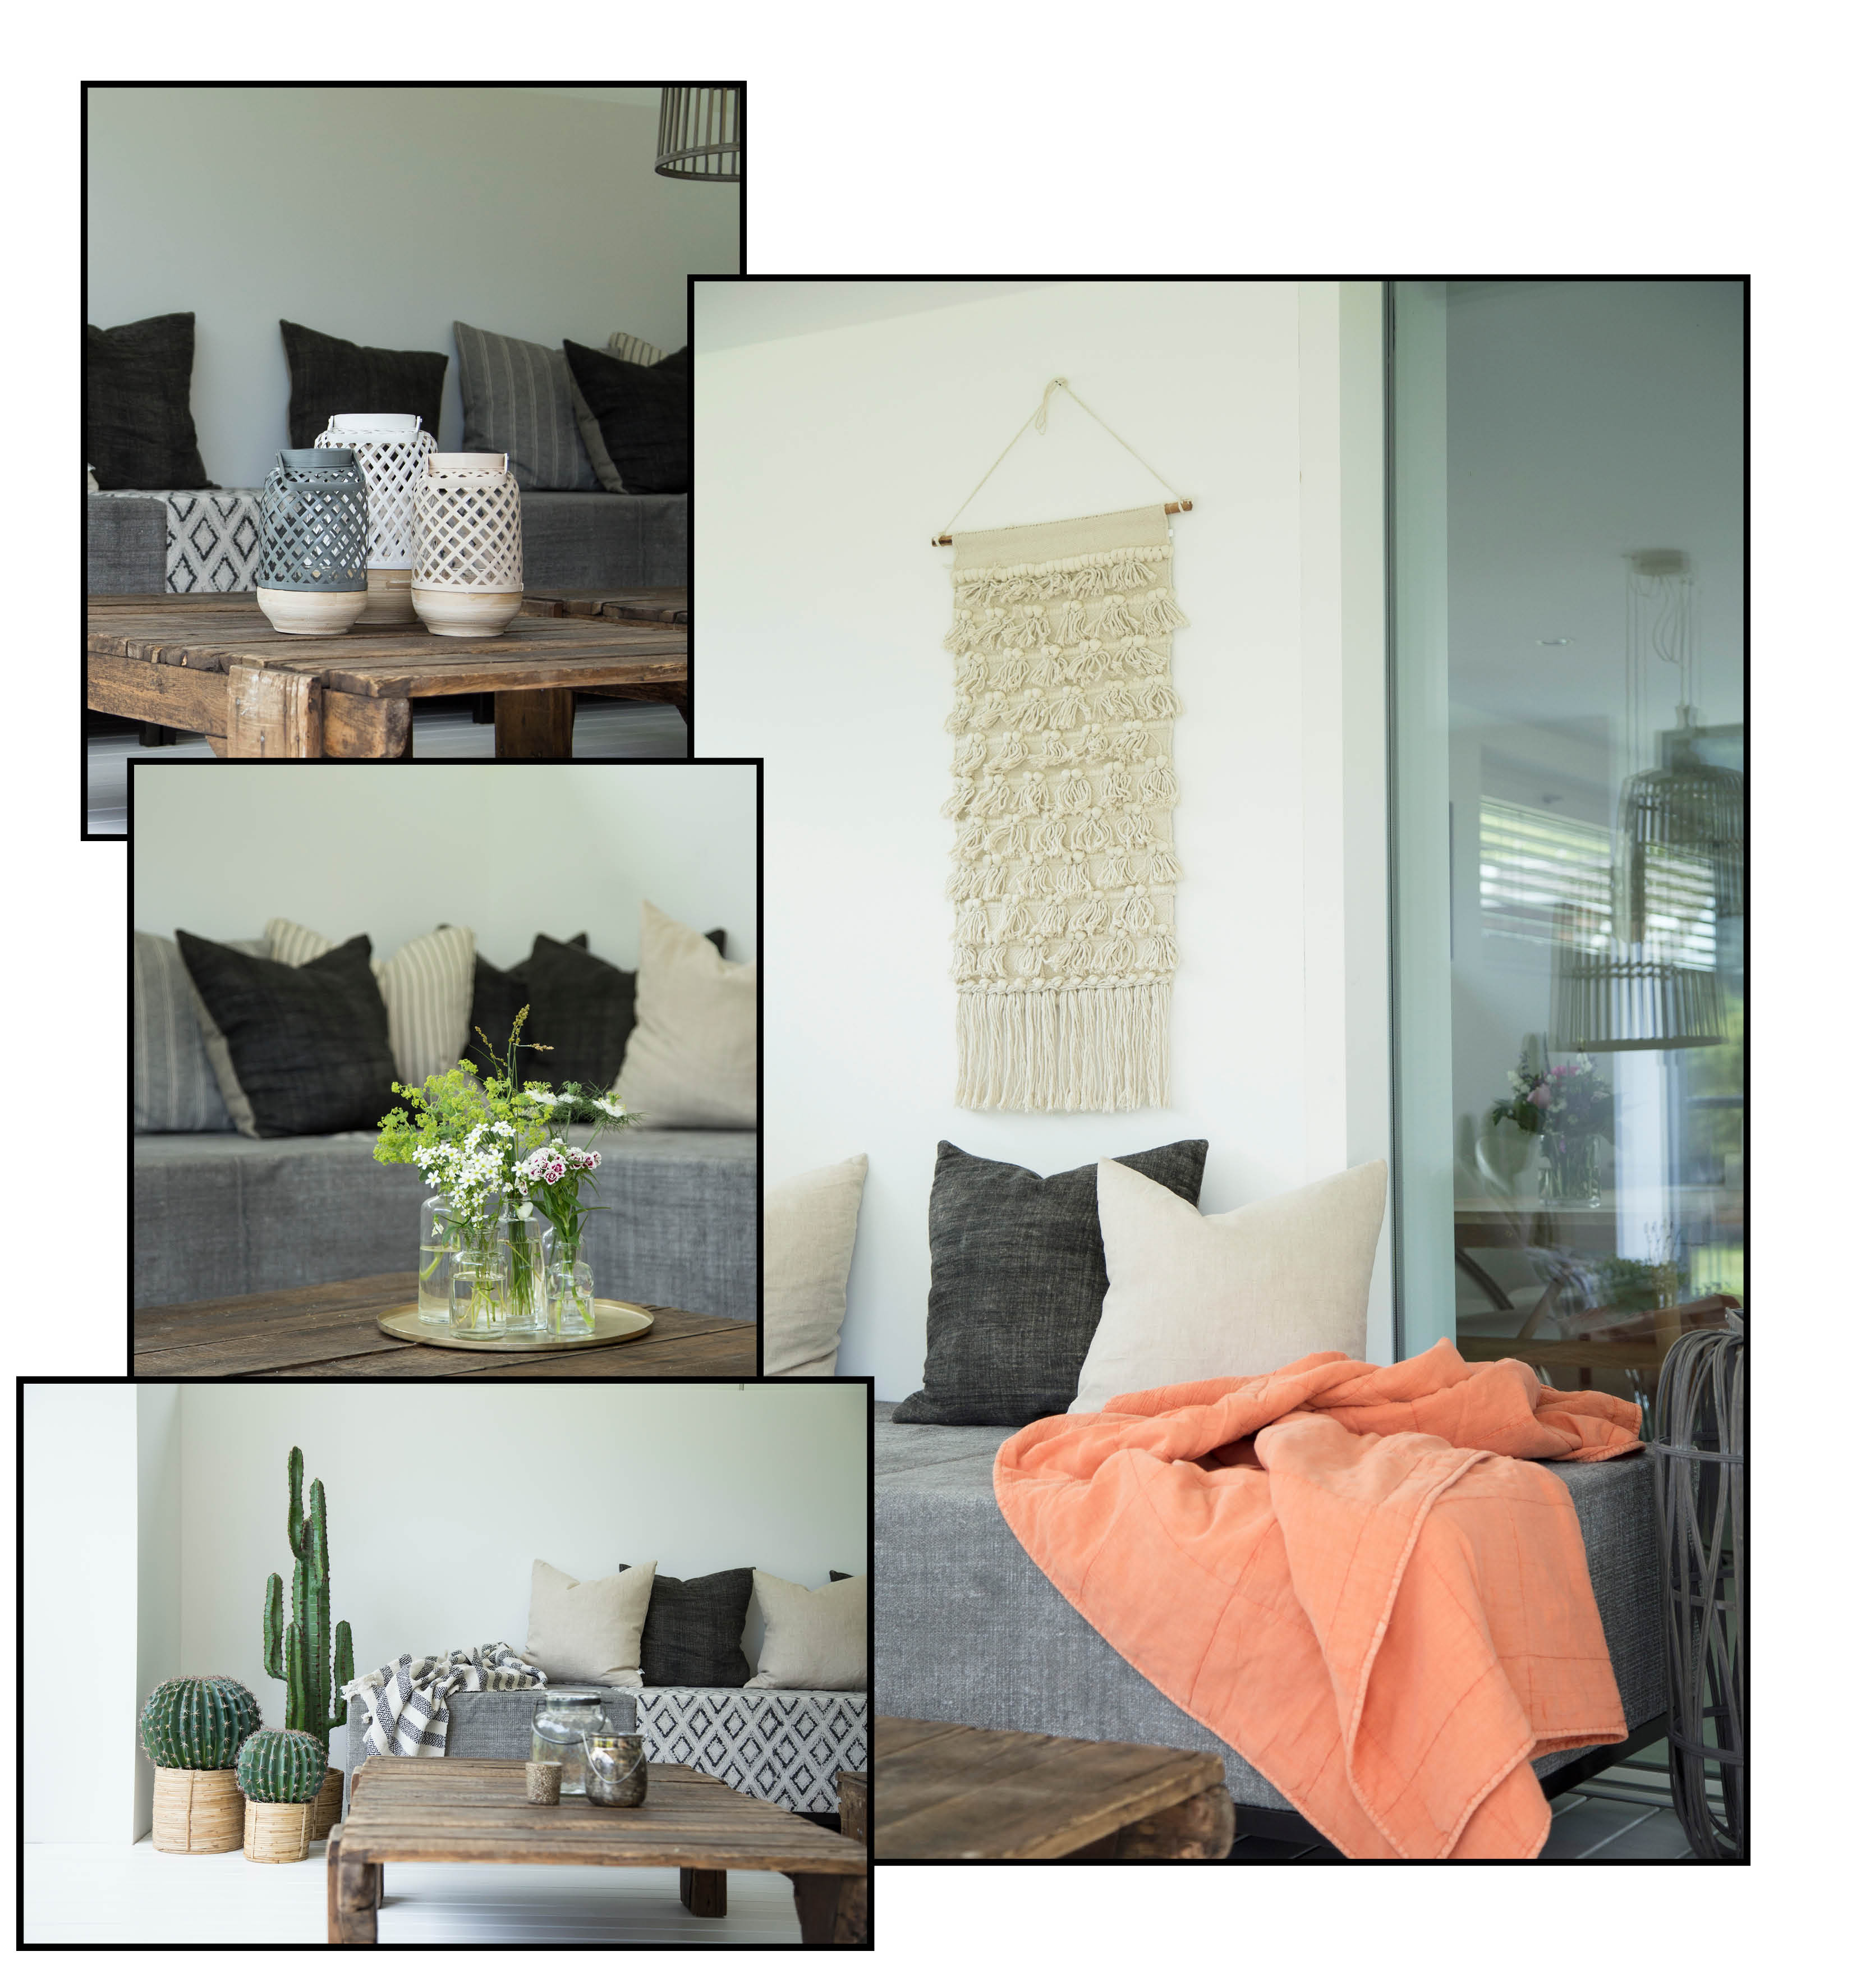 skandinavisch wohnen auf der terrasse ideen trends ediths blog. Black Bedroom Furniture Sets. Home Design Ideas